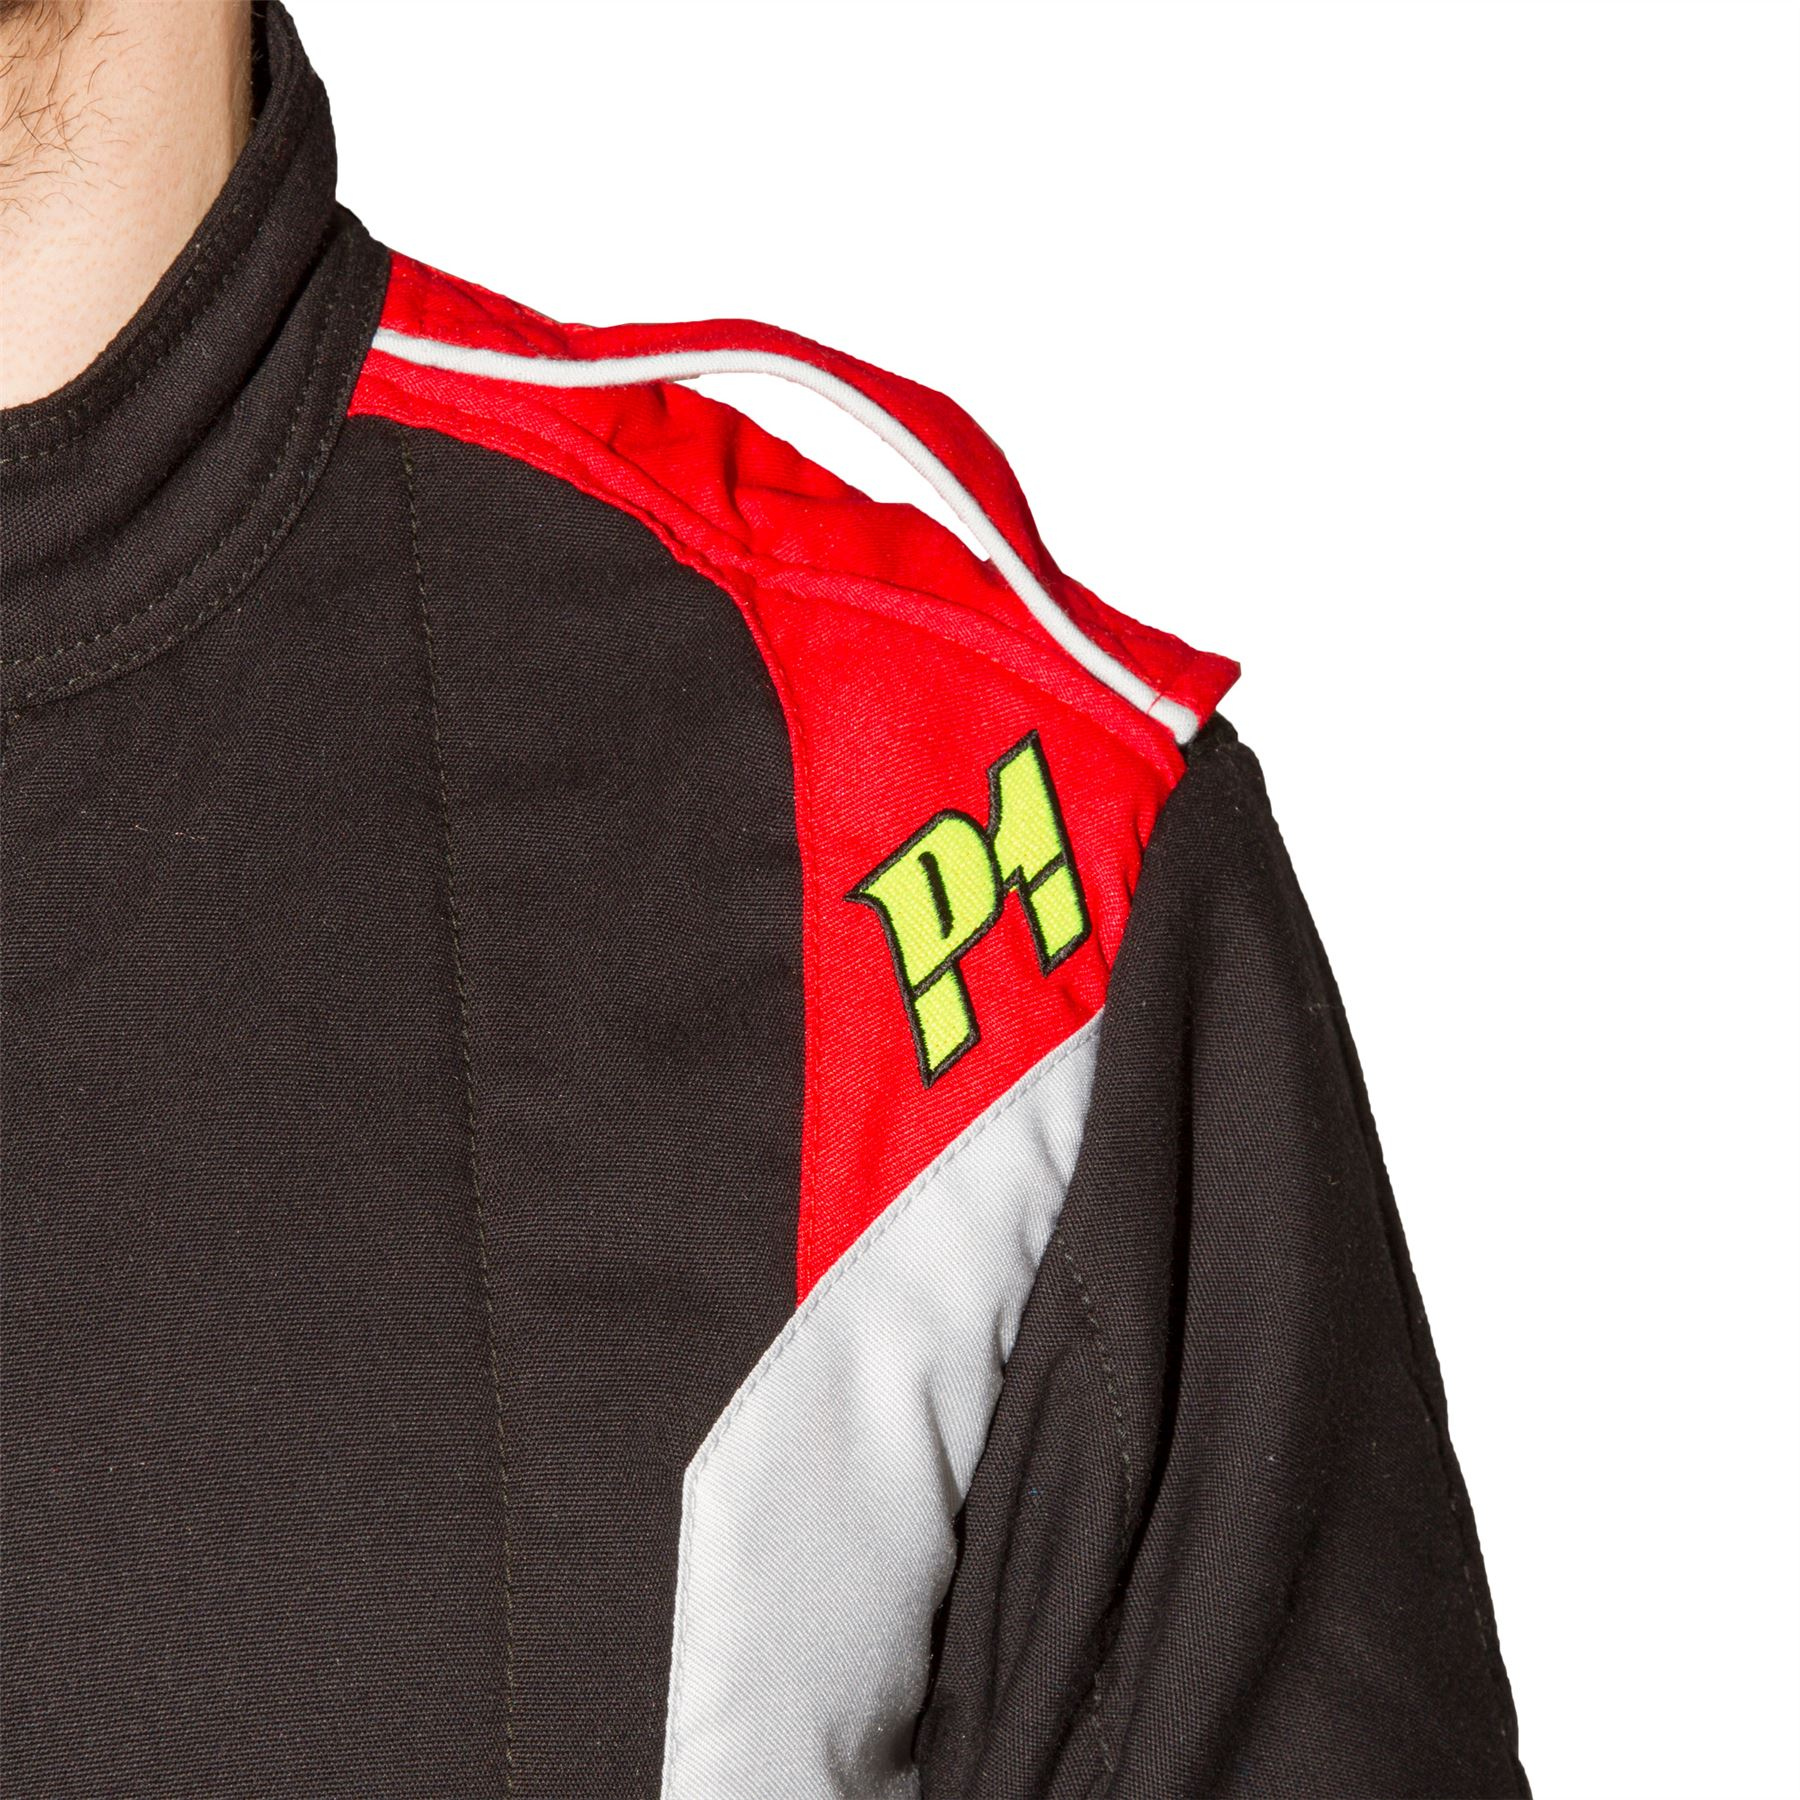 Indexbild 5 - P1-Racewear-Smart-X3-2-Layer-Race-Rally-Suit-Nomex-FIA-Approved